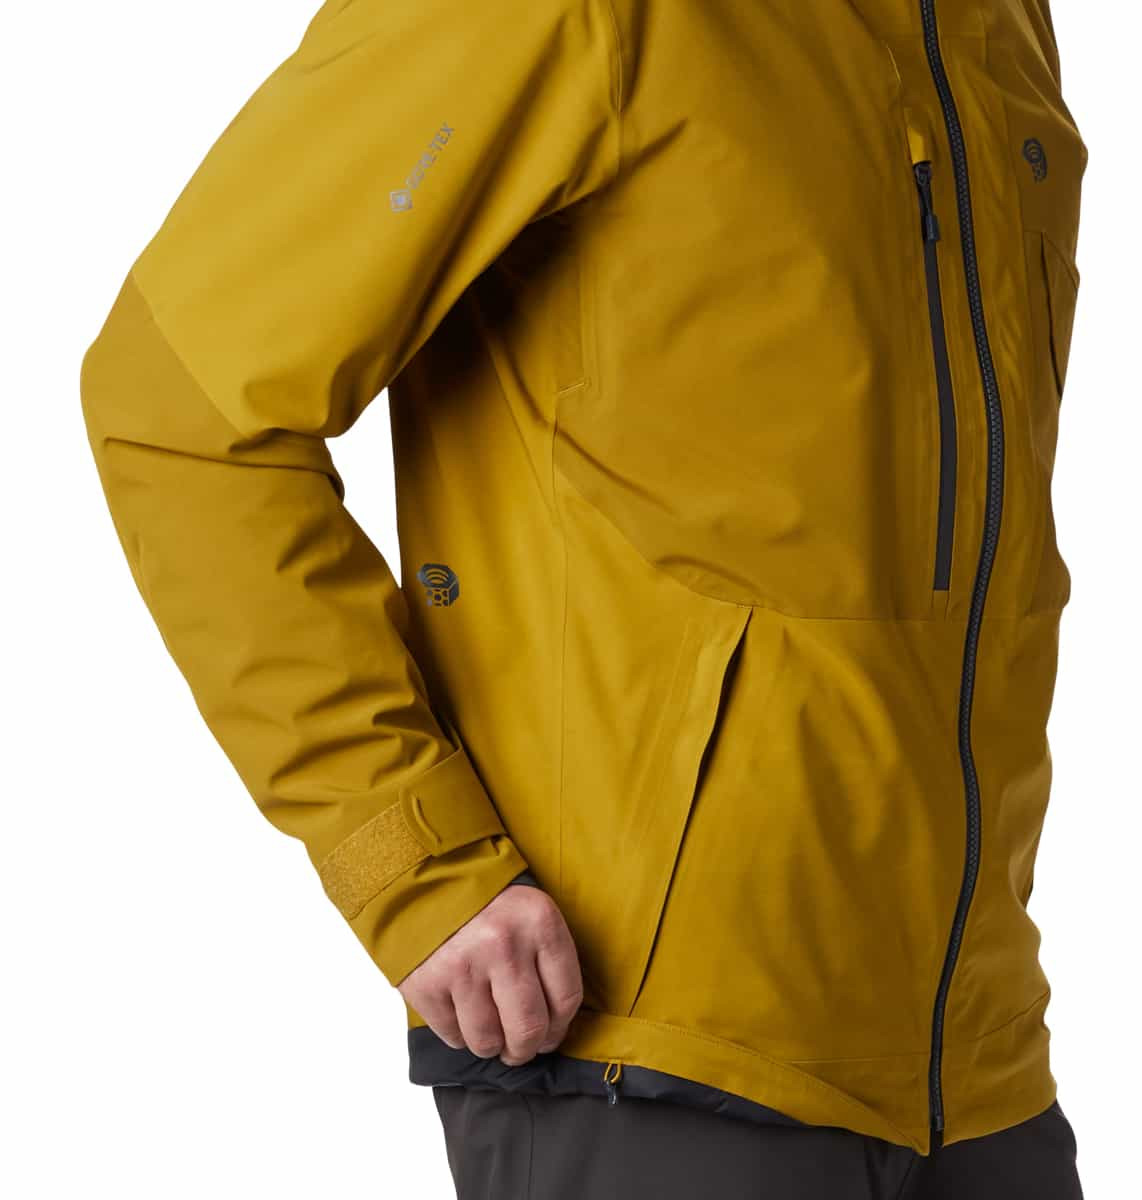 Mens Adidas SMT Reflective Jacket, perfect for Runners